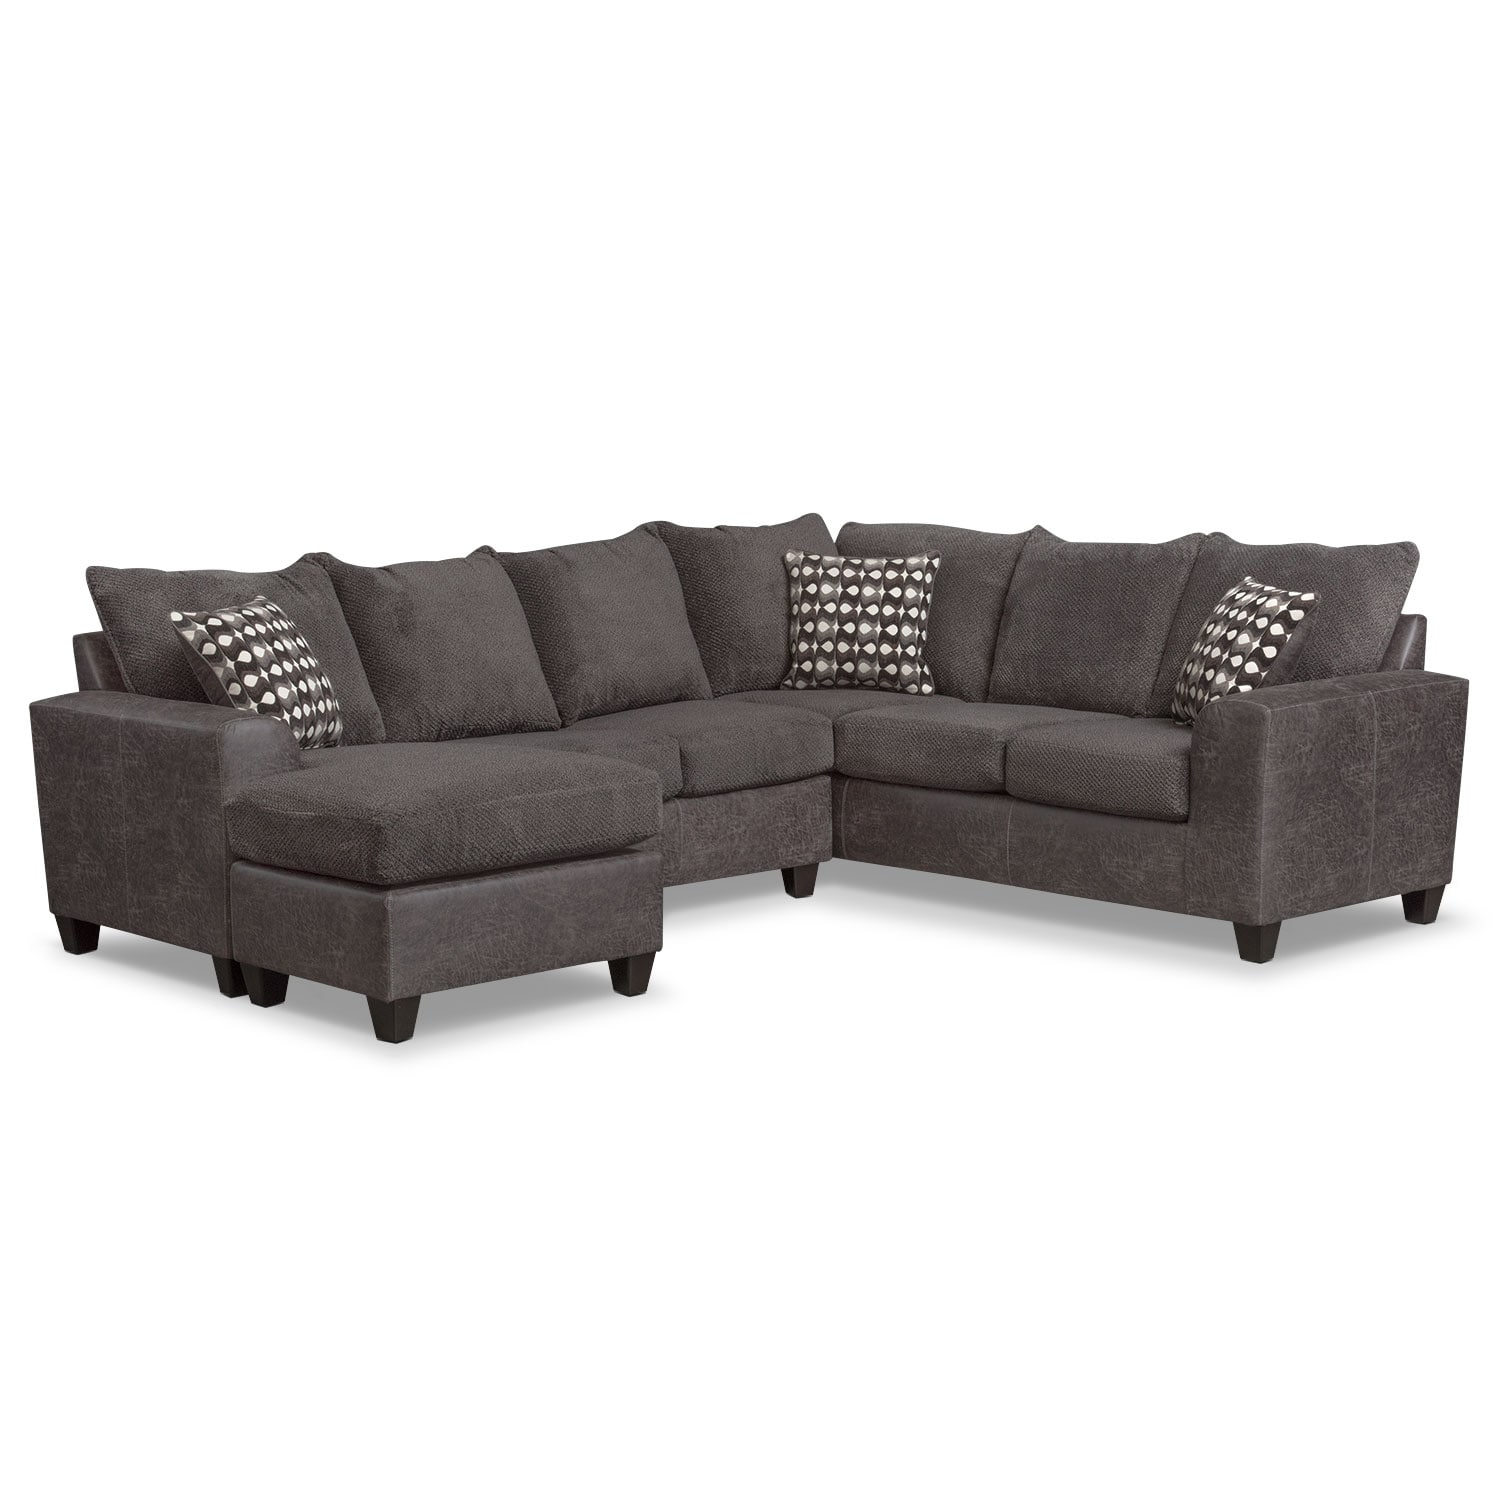 Brando 3-Piece Sectional with Modular Chaise - Smoke  sc 1 st  Value City Furniture : multi piece sectional sofa - Sectionals, Sofas & Couches